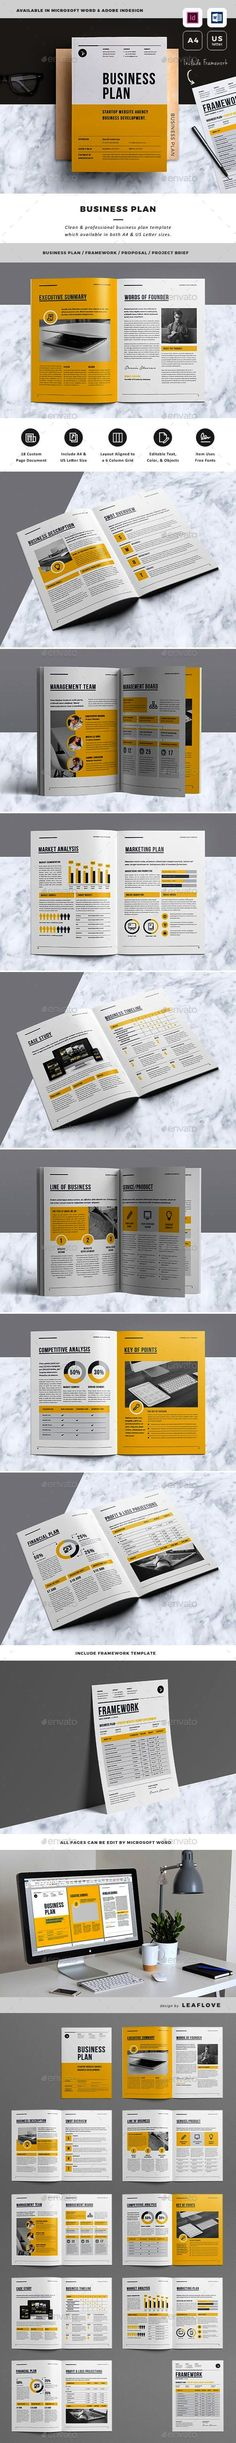 9 best best business plan infographics images on pinterest business infographic data visualisation business infographic business plan design template proposals invoices s accmission Image collections